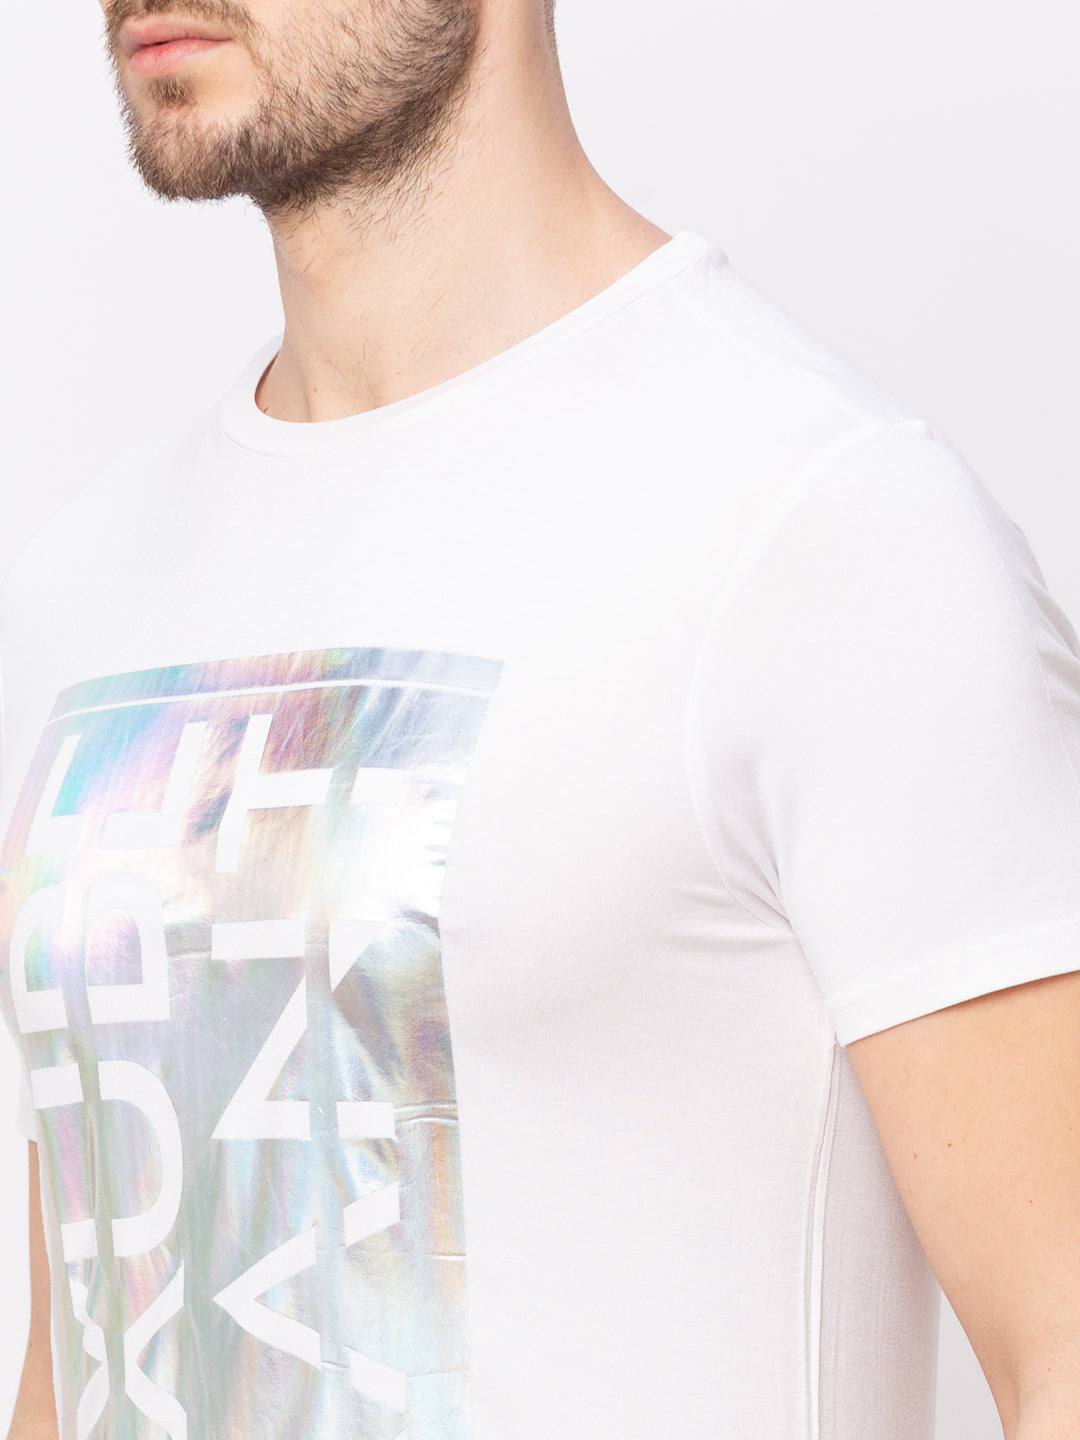 Globus White Printed T-Shirt-4